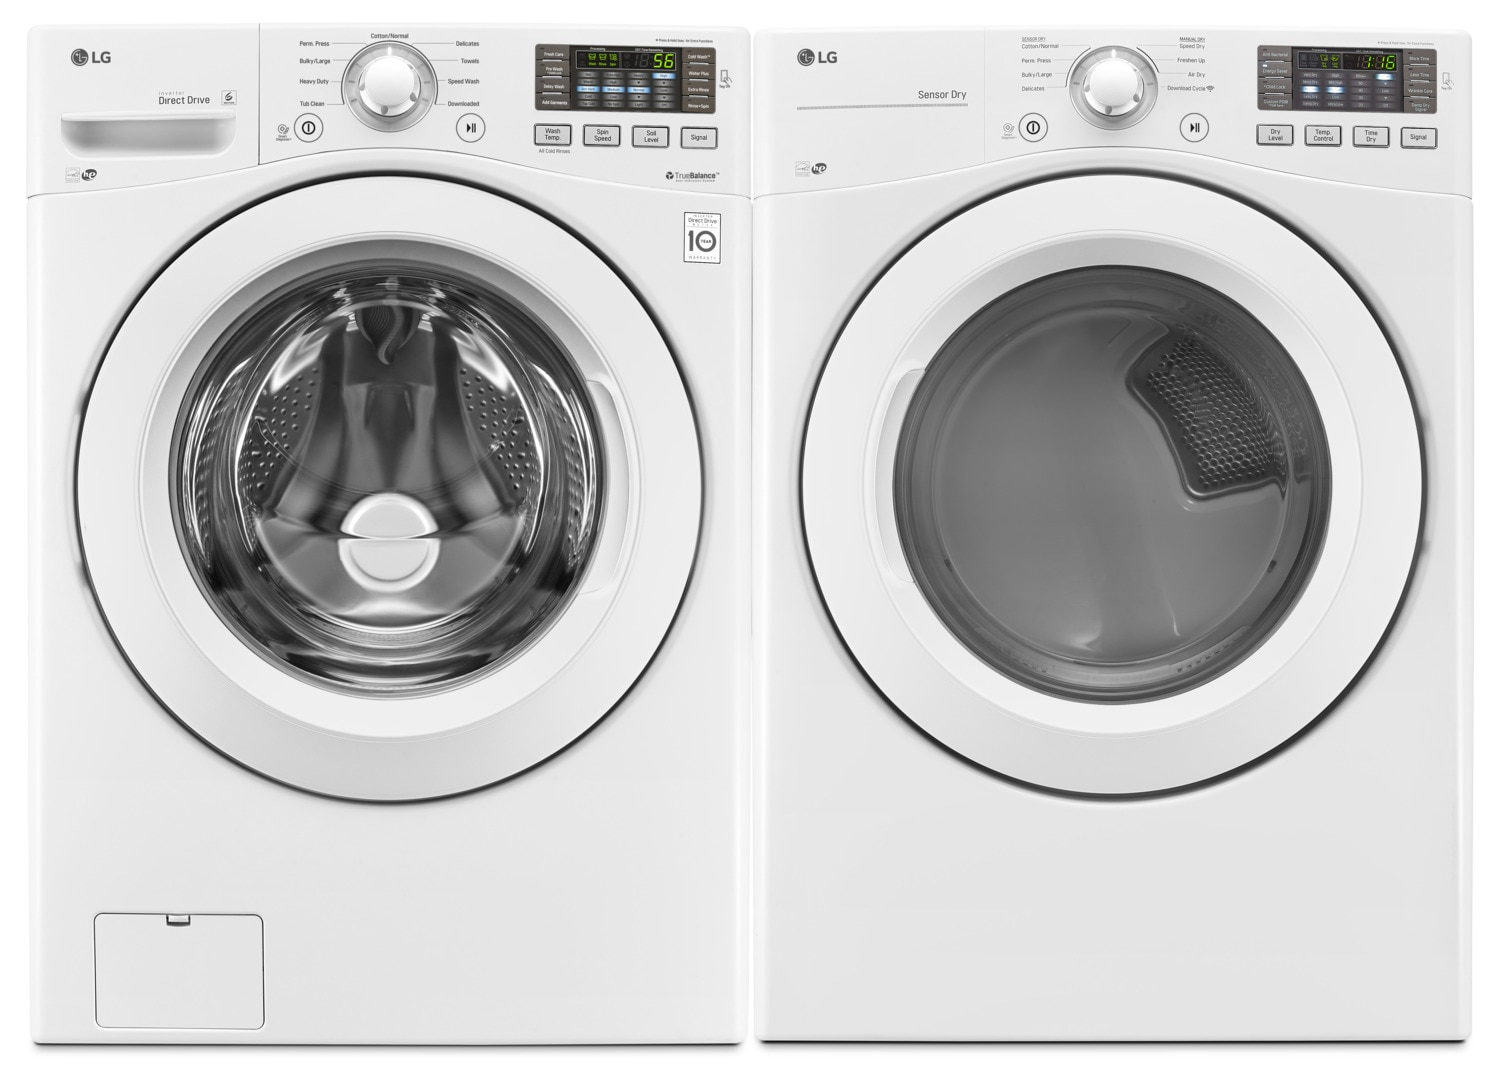 LG 5.2 Cu. Ft. Ultra-Large Capacity Front-Load Washer and Electric Dryer